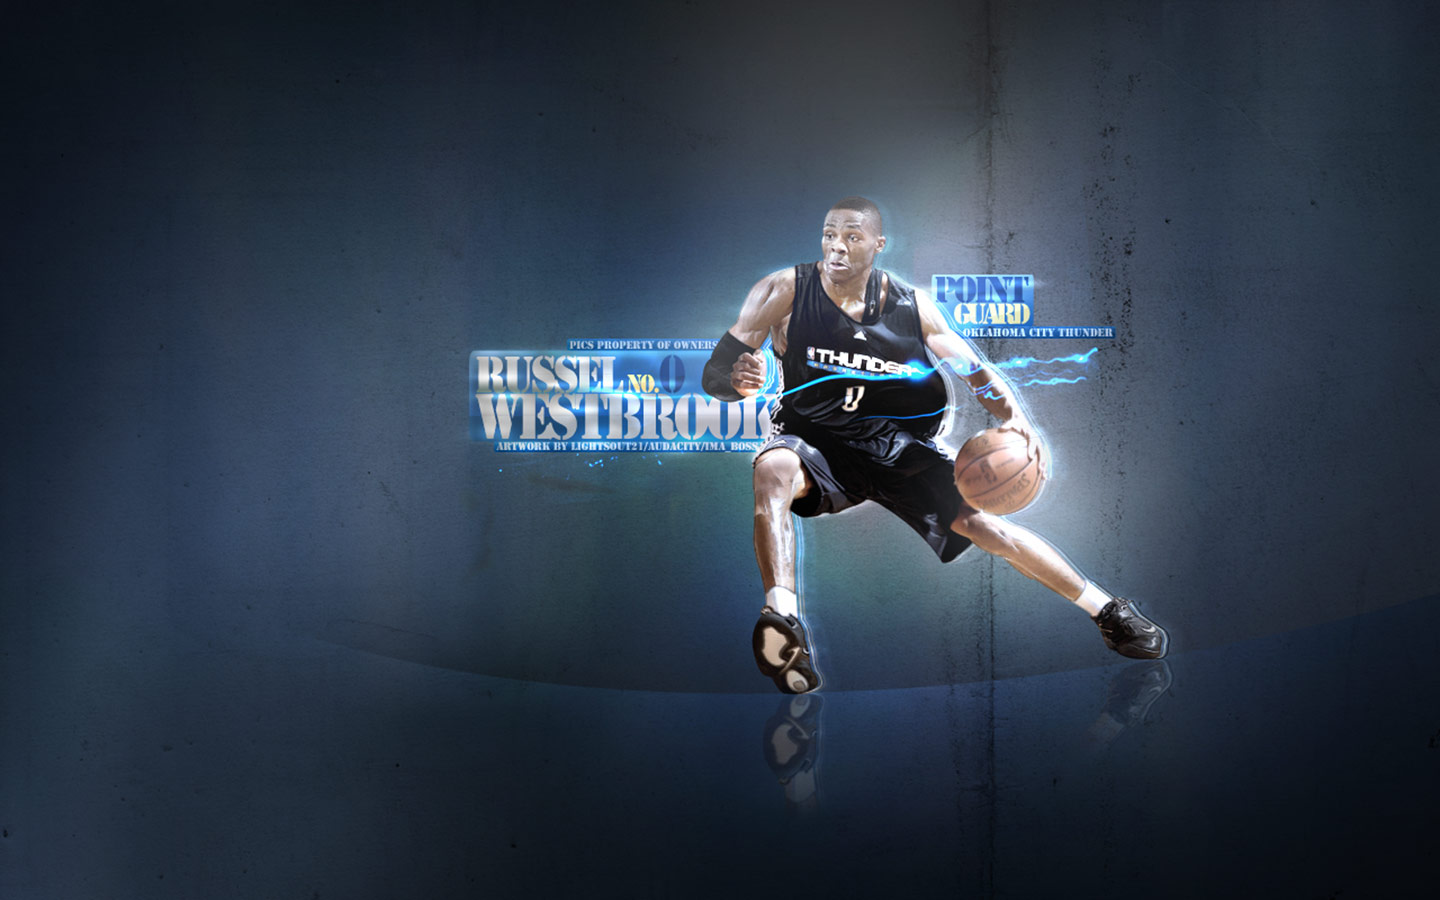 Russell Westbrook Wallpapers at BasketWallpapers.